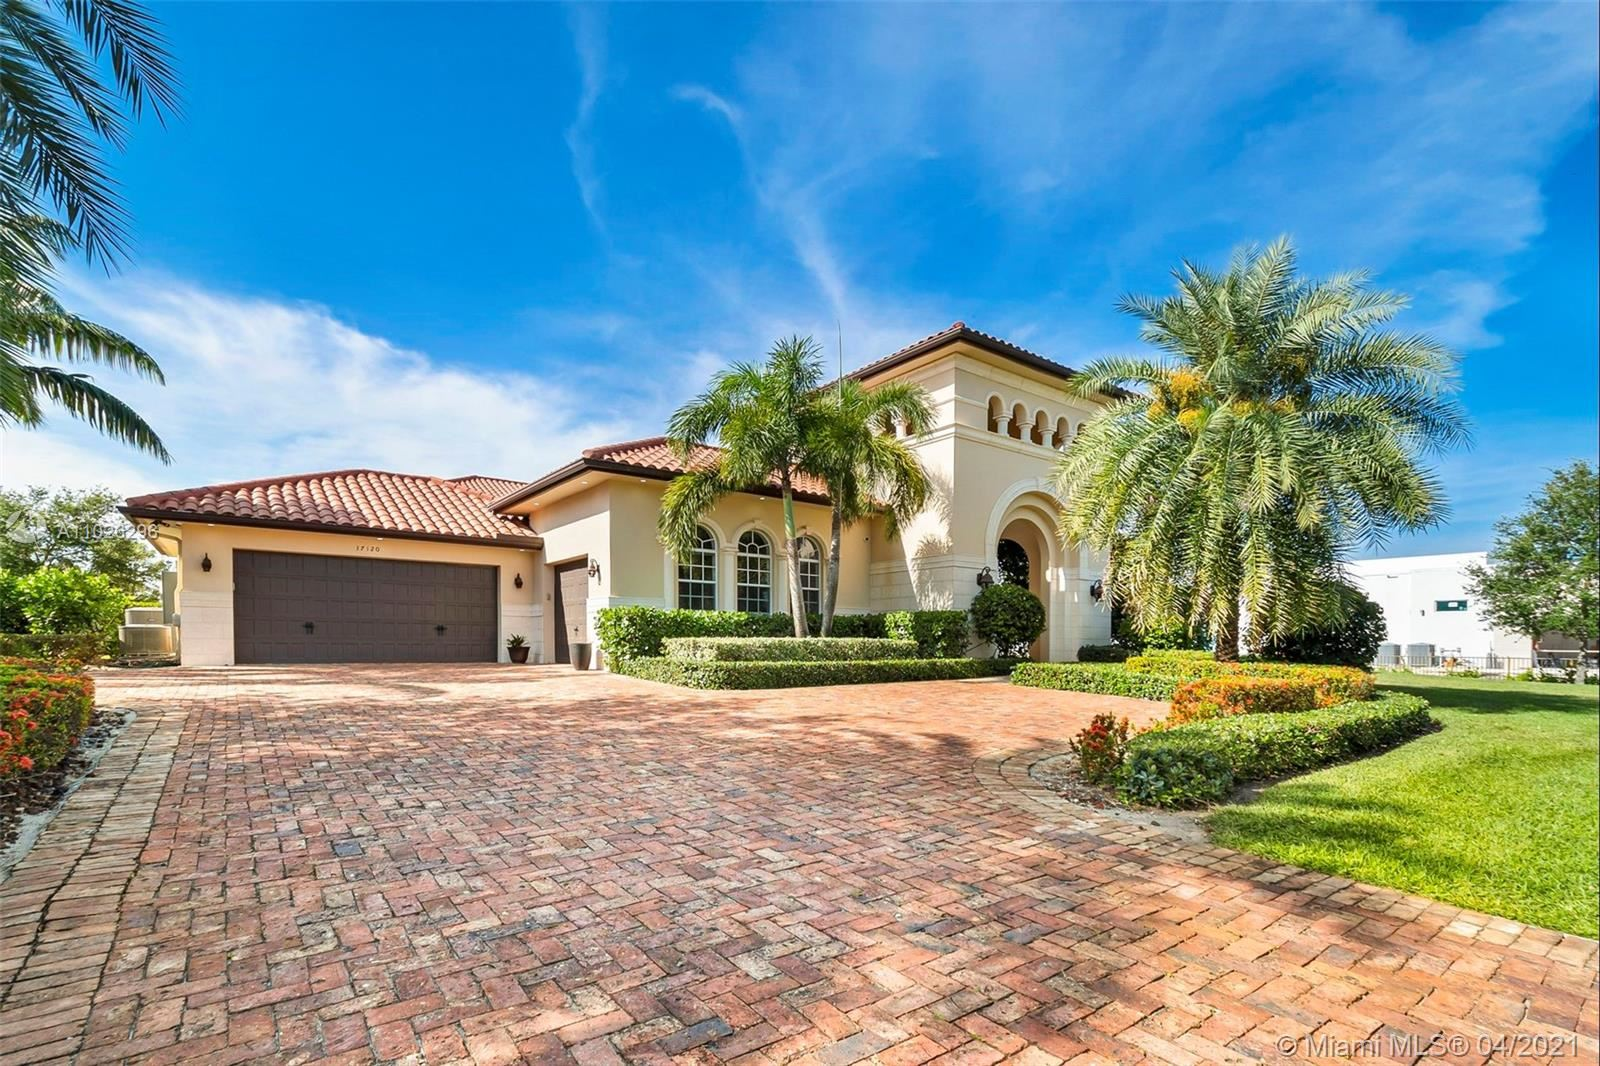 17120 Reserve Ct, SouthWest Ranches, FL 33331 - #: A11026296